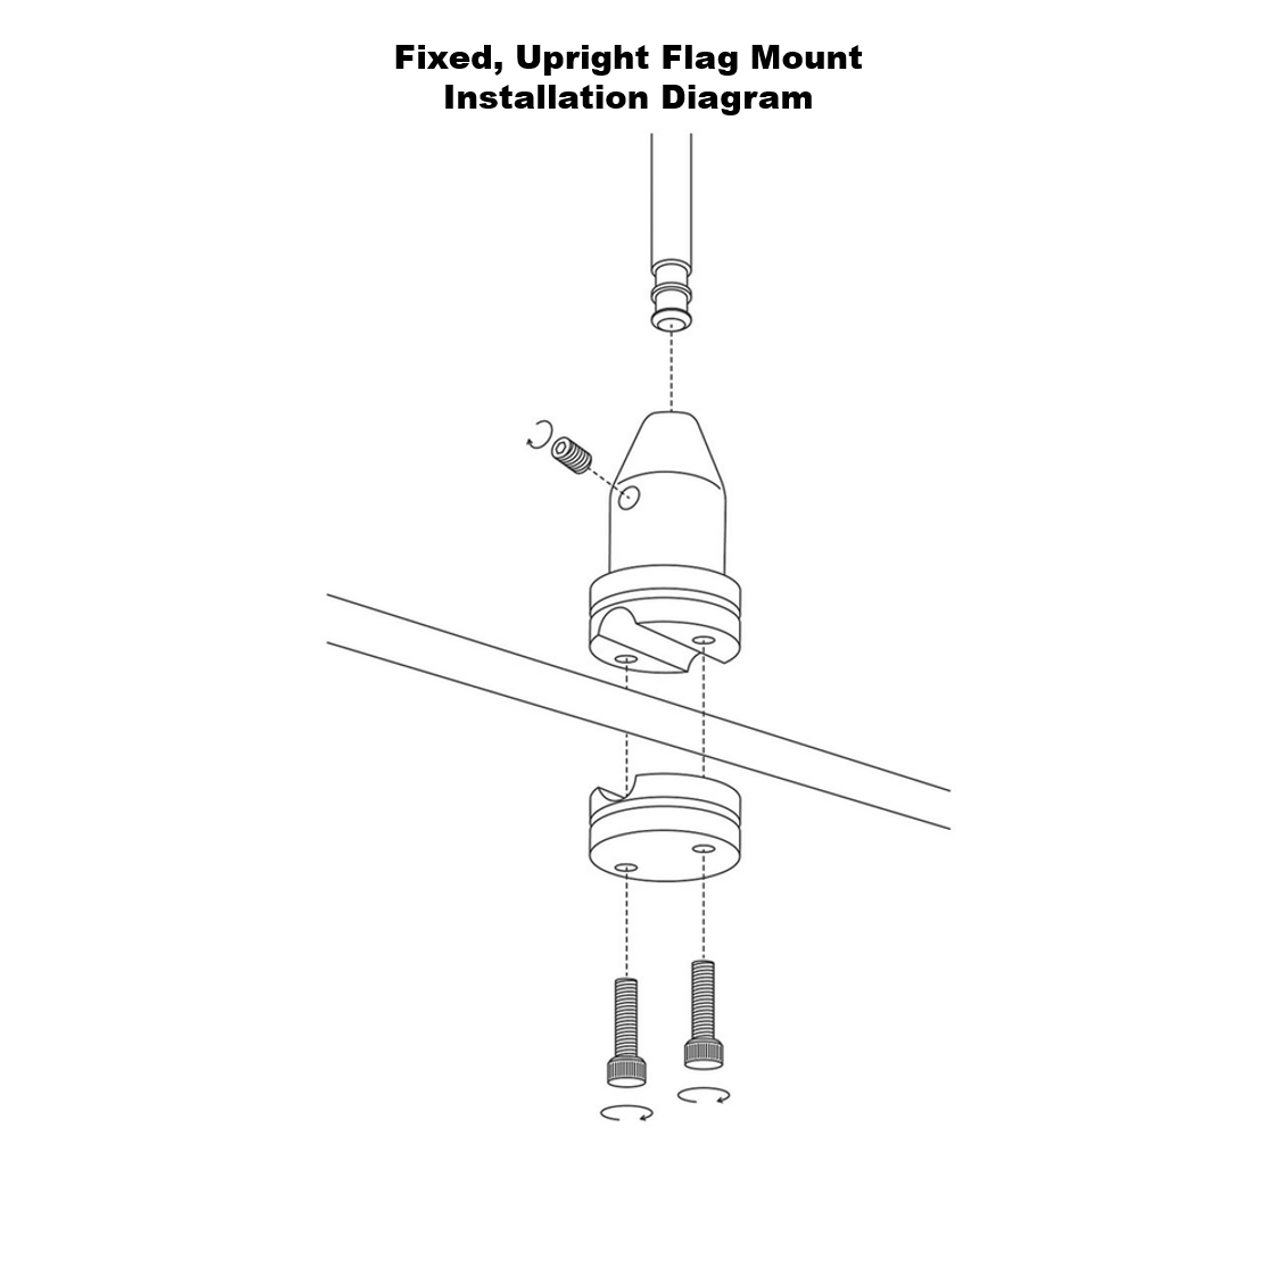 Fixed, upright mount installation diagram (exploded view)